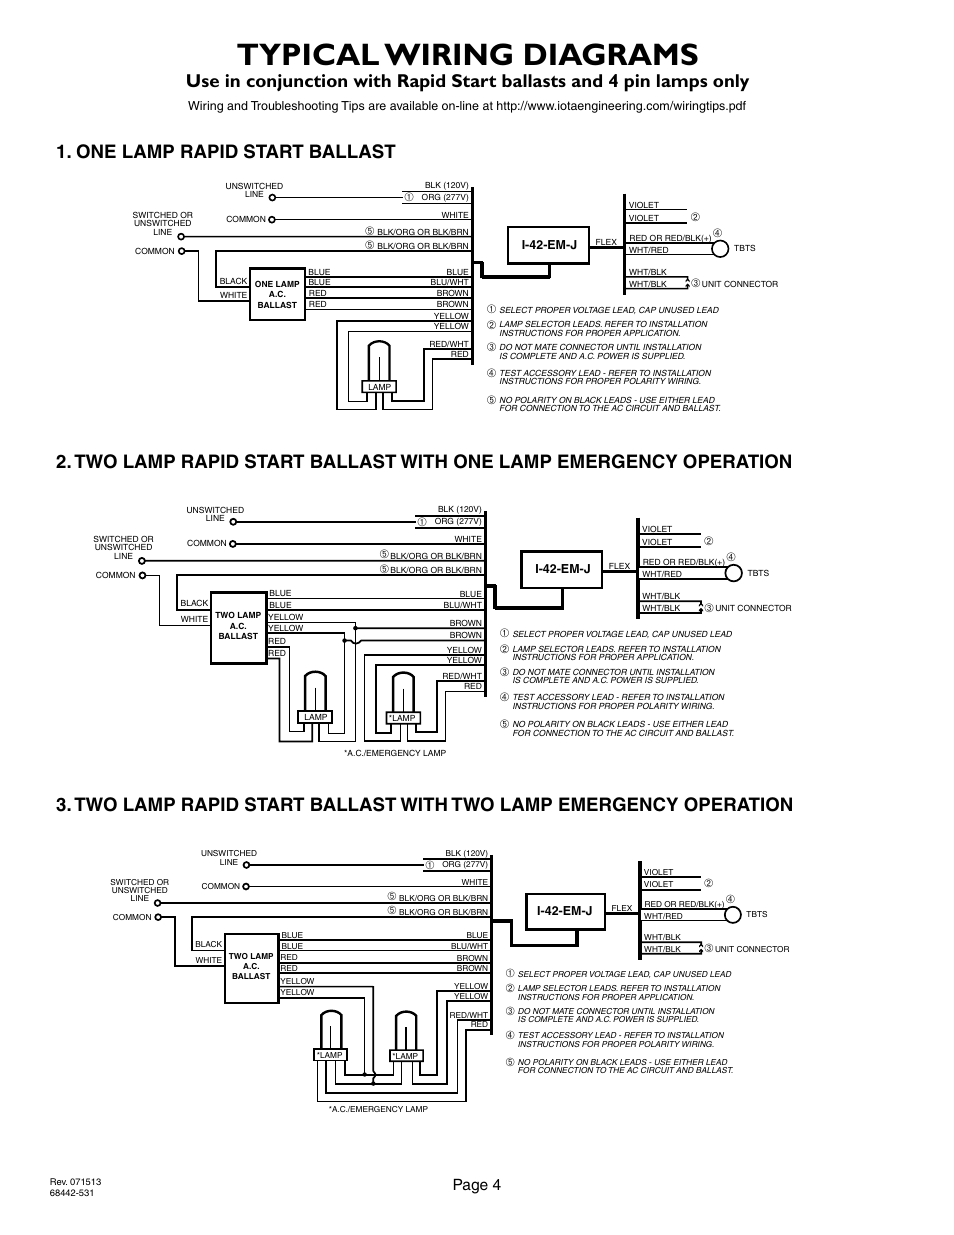 rapid start ballast wiring diagram rapid image typical wiring diagrams page 4 2lrsb42j ac two lamp rapid start on rapid start ballast wiring